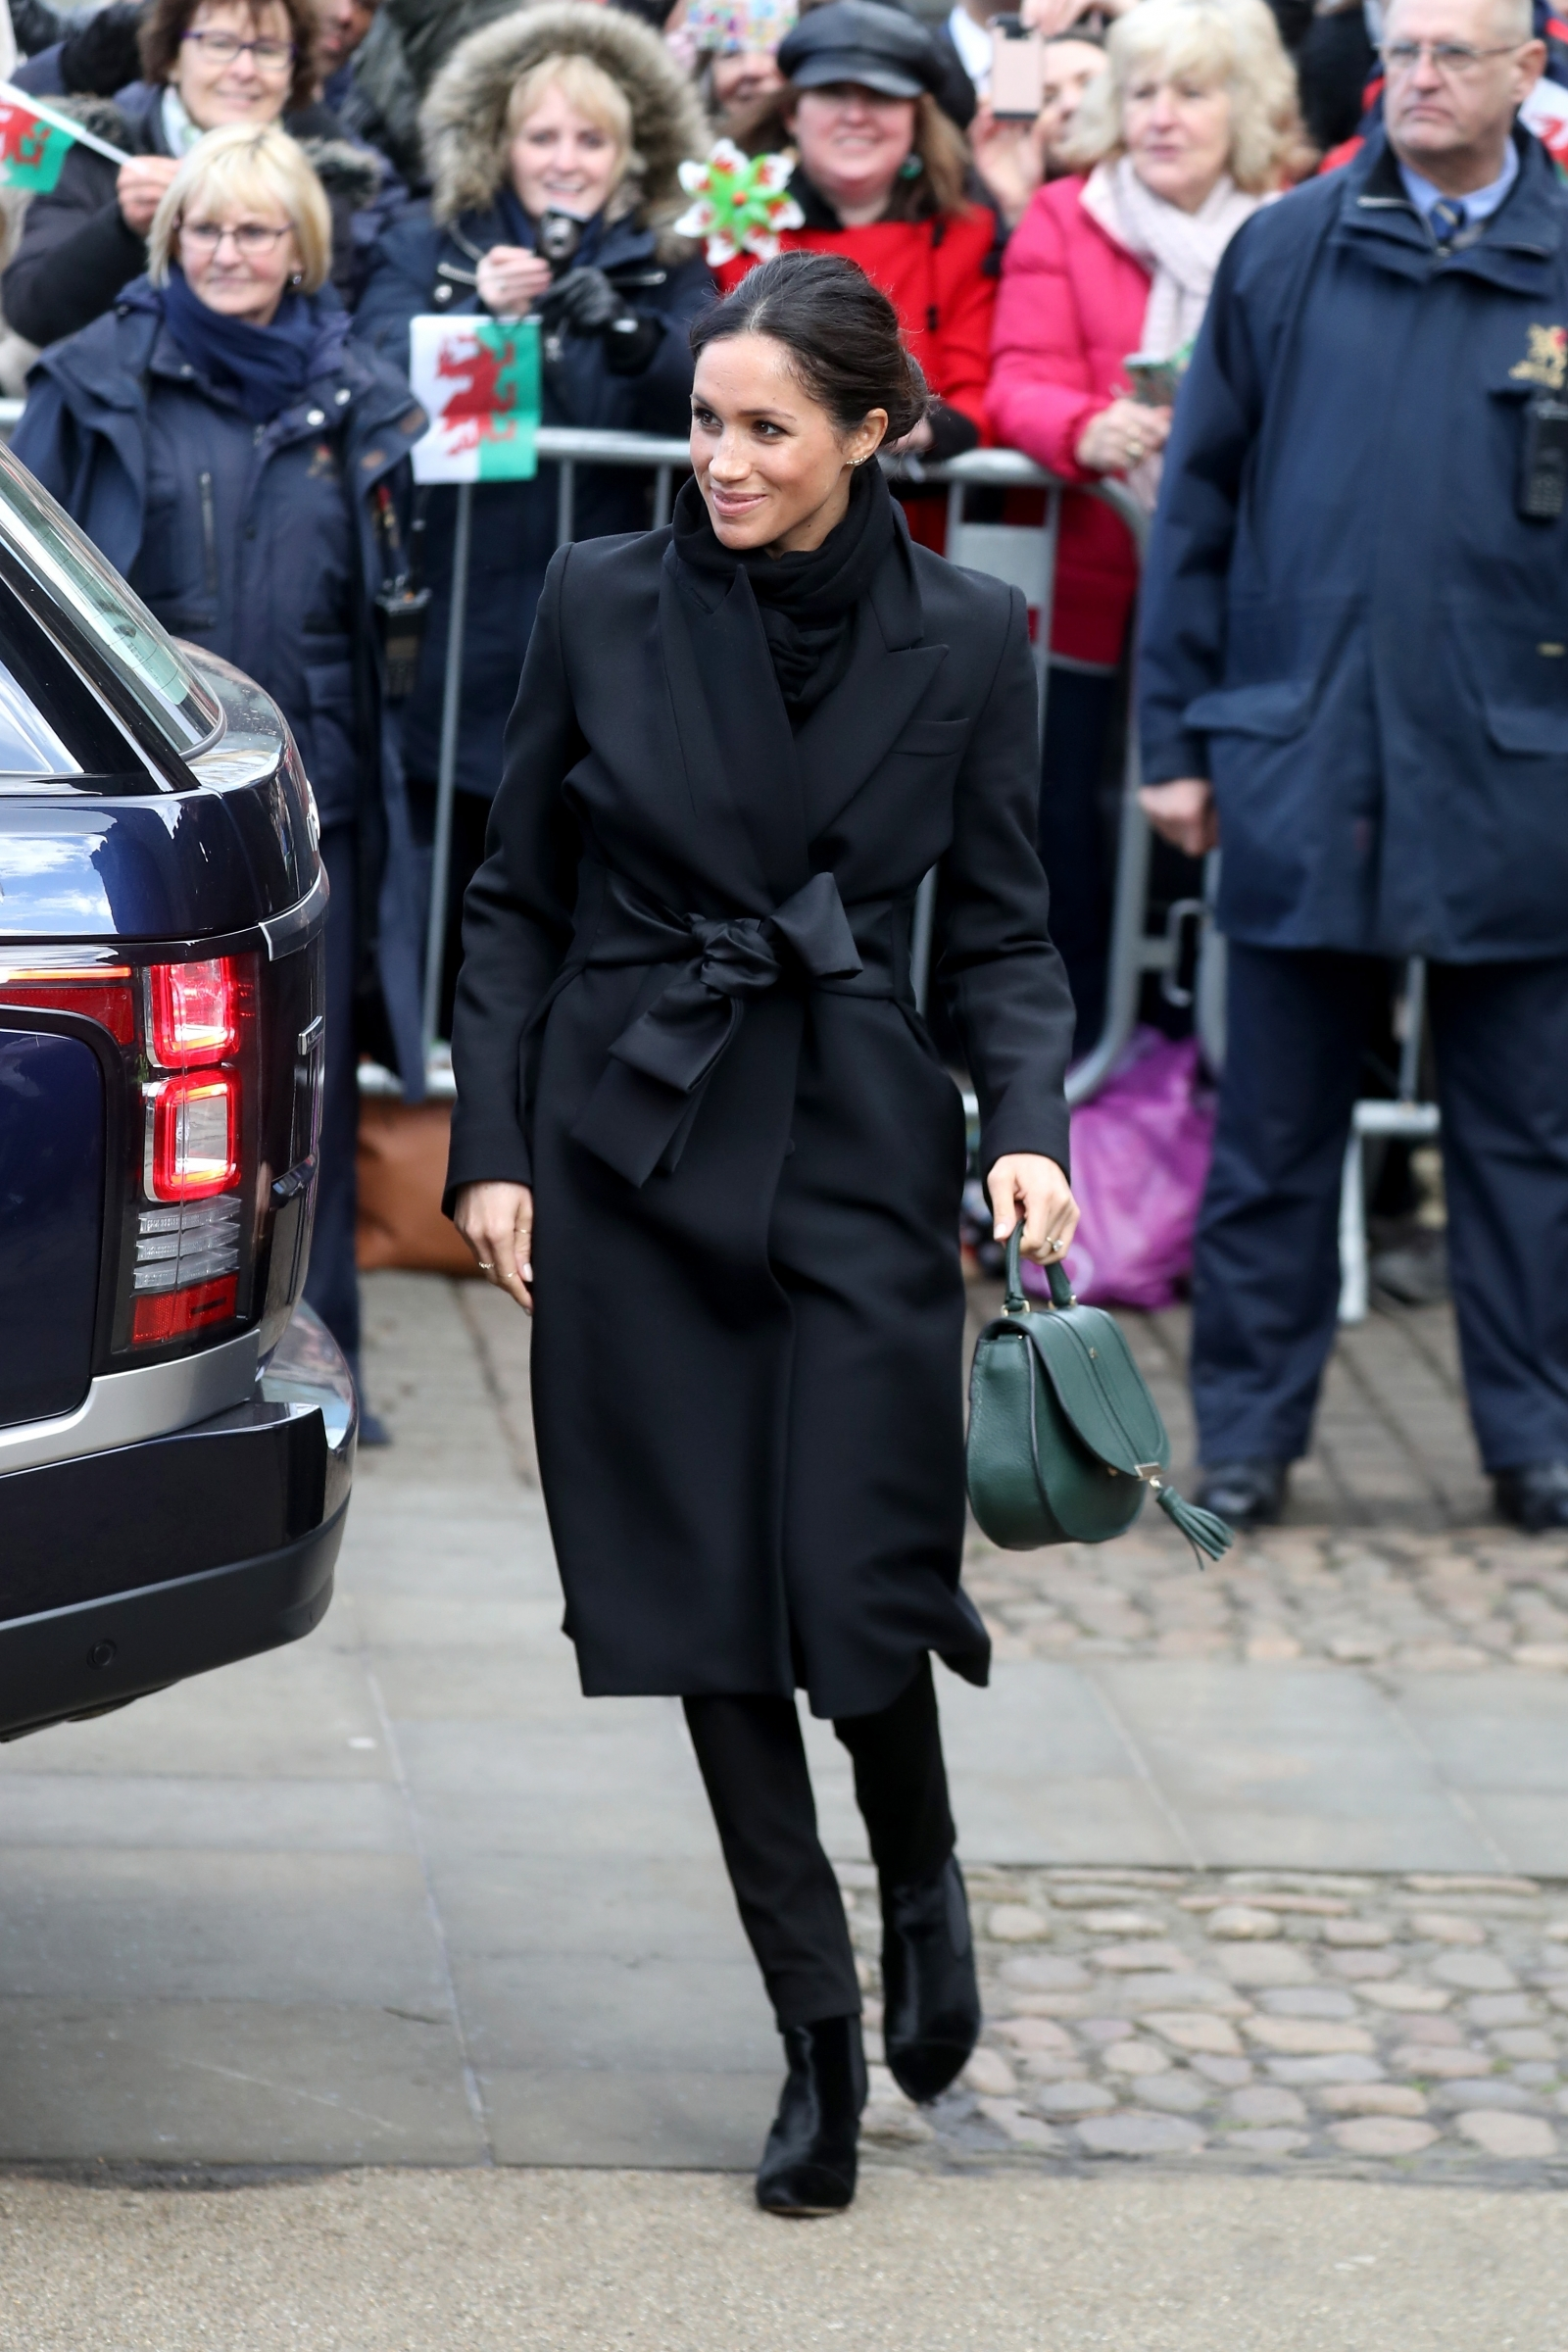 Meghan Markle stuns in £1,350 Stella McCartney wrap coat upon first visit to Wales with Prince Harry